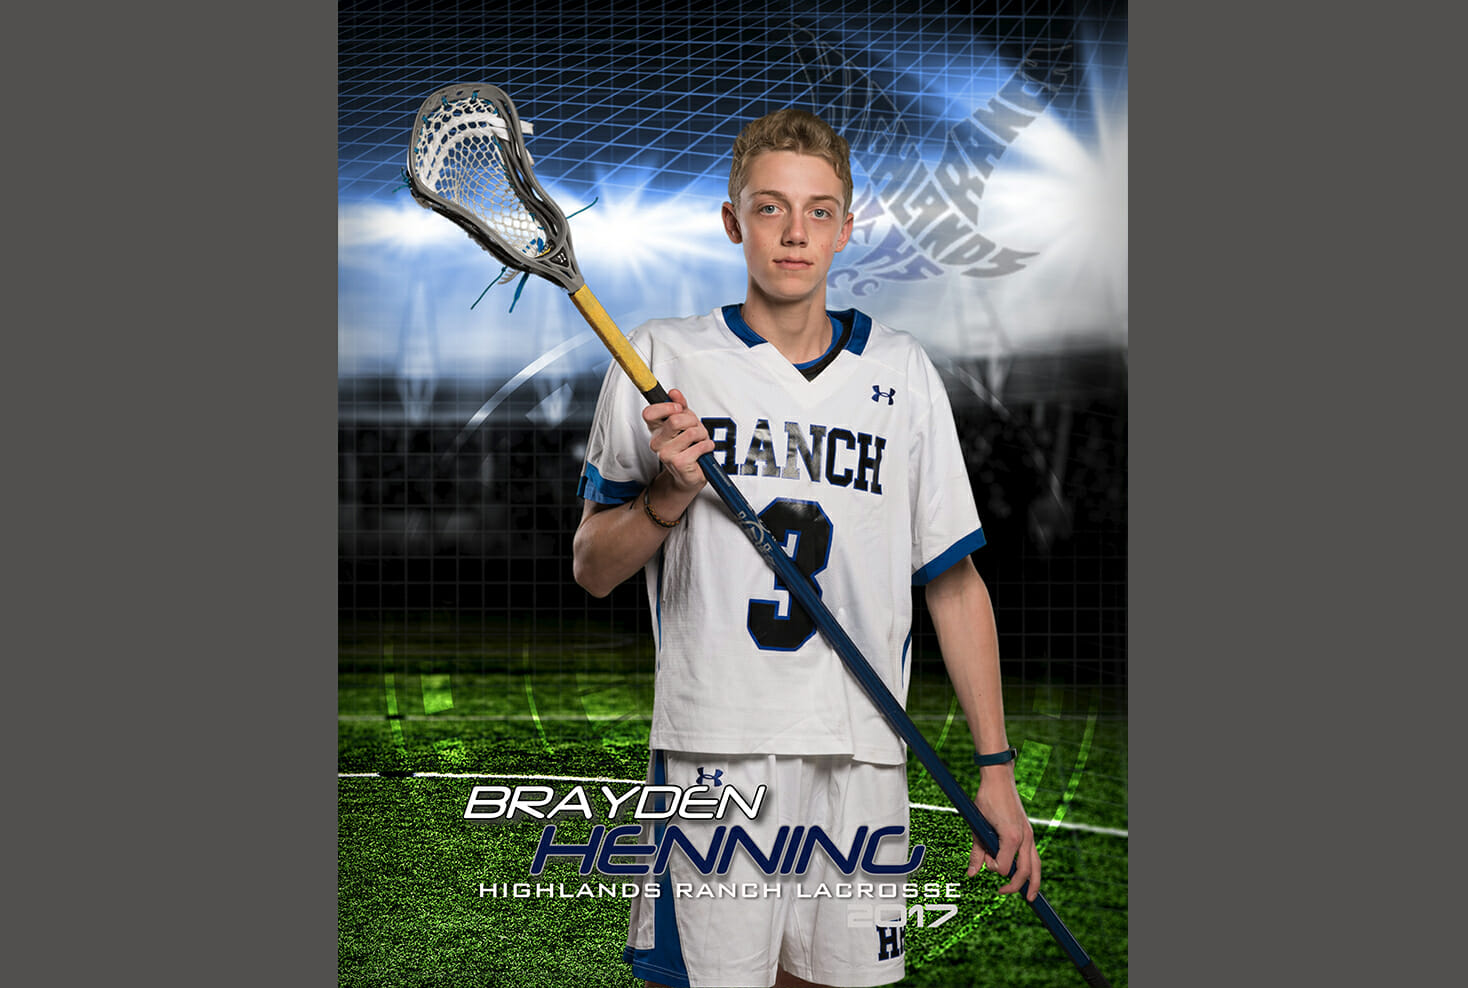 Highlands Ranch High school lacrosse sports photo